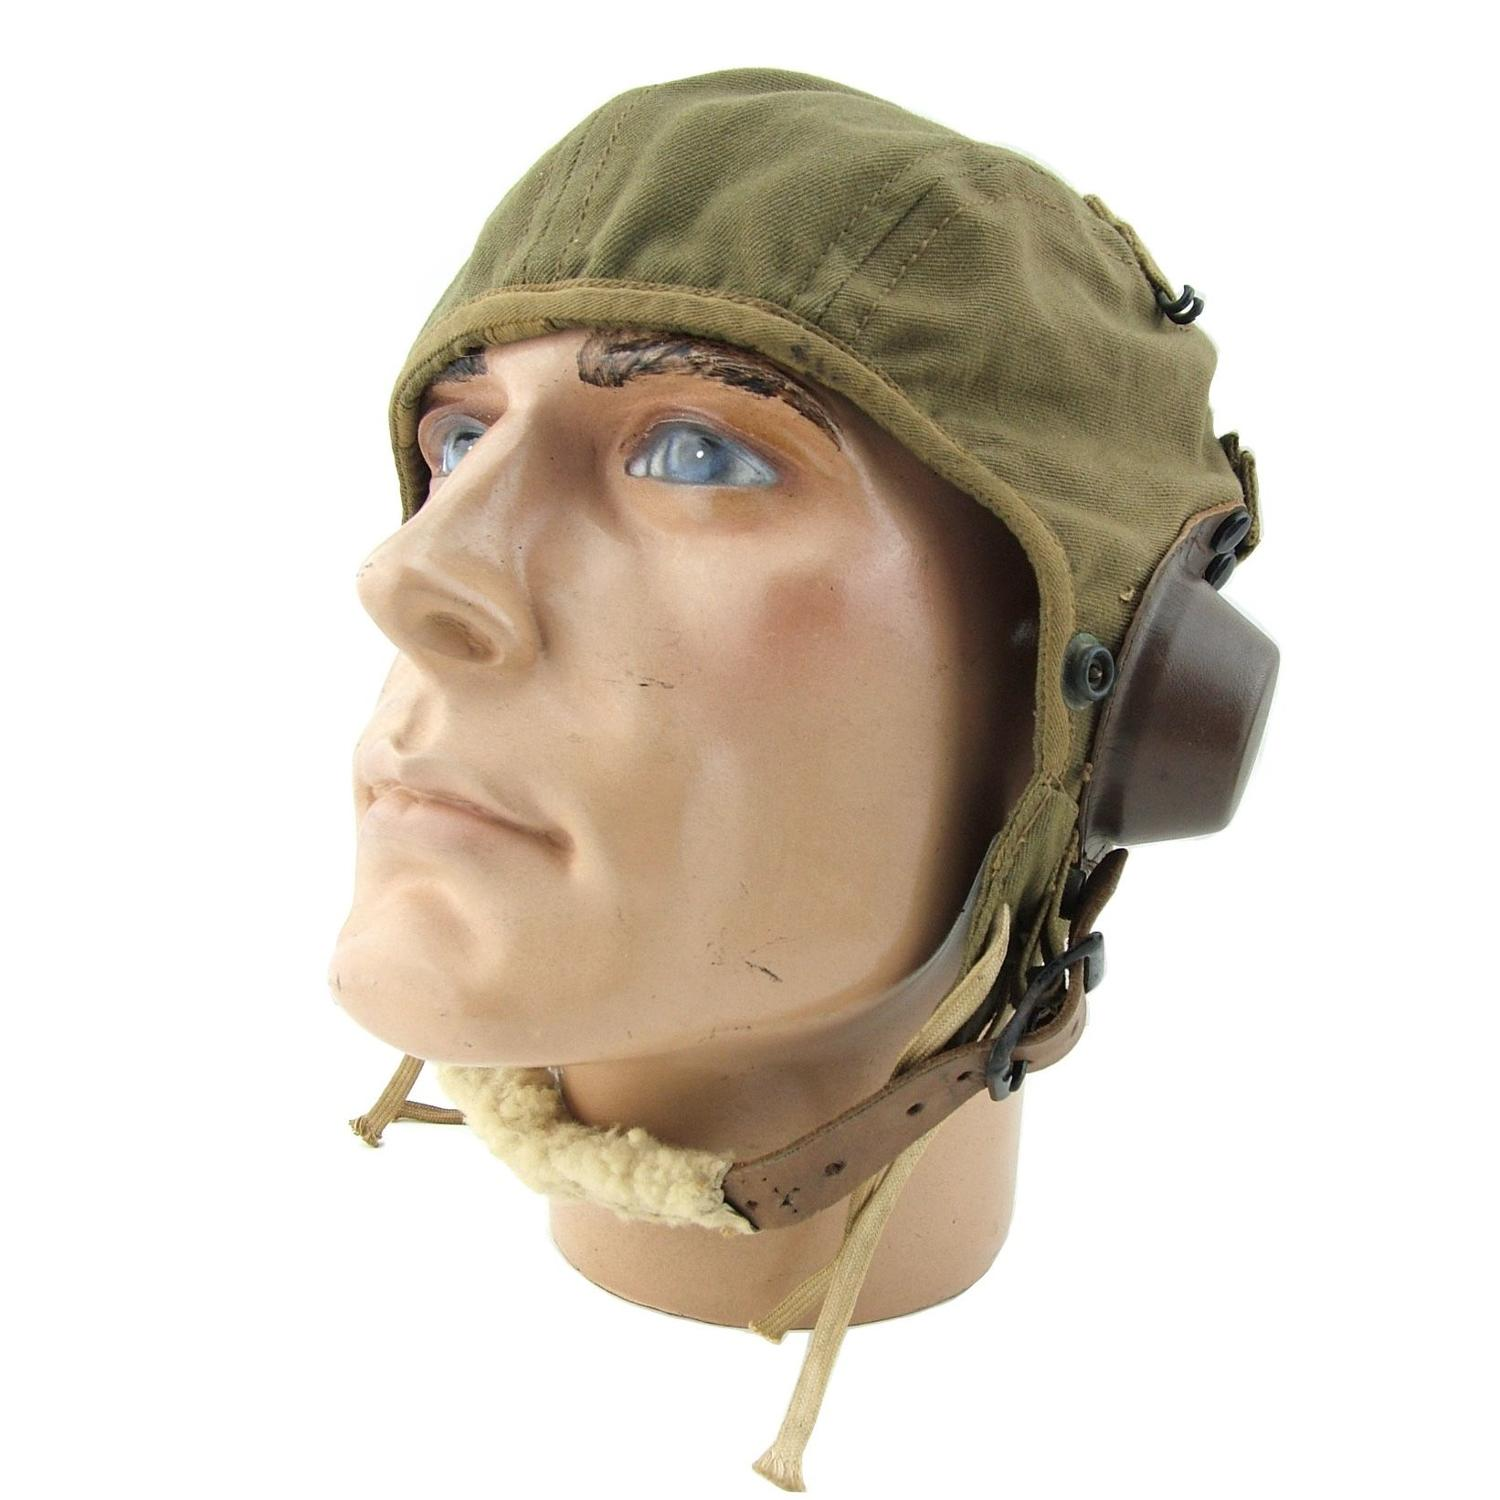 USAAF A-9 summer flying helmet